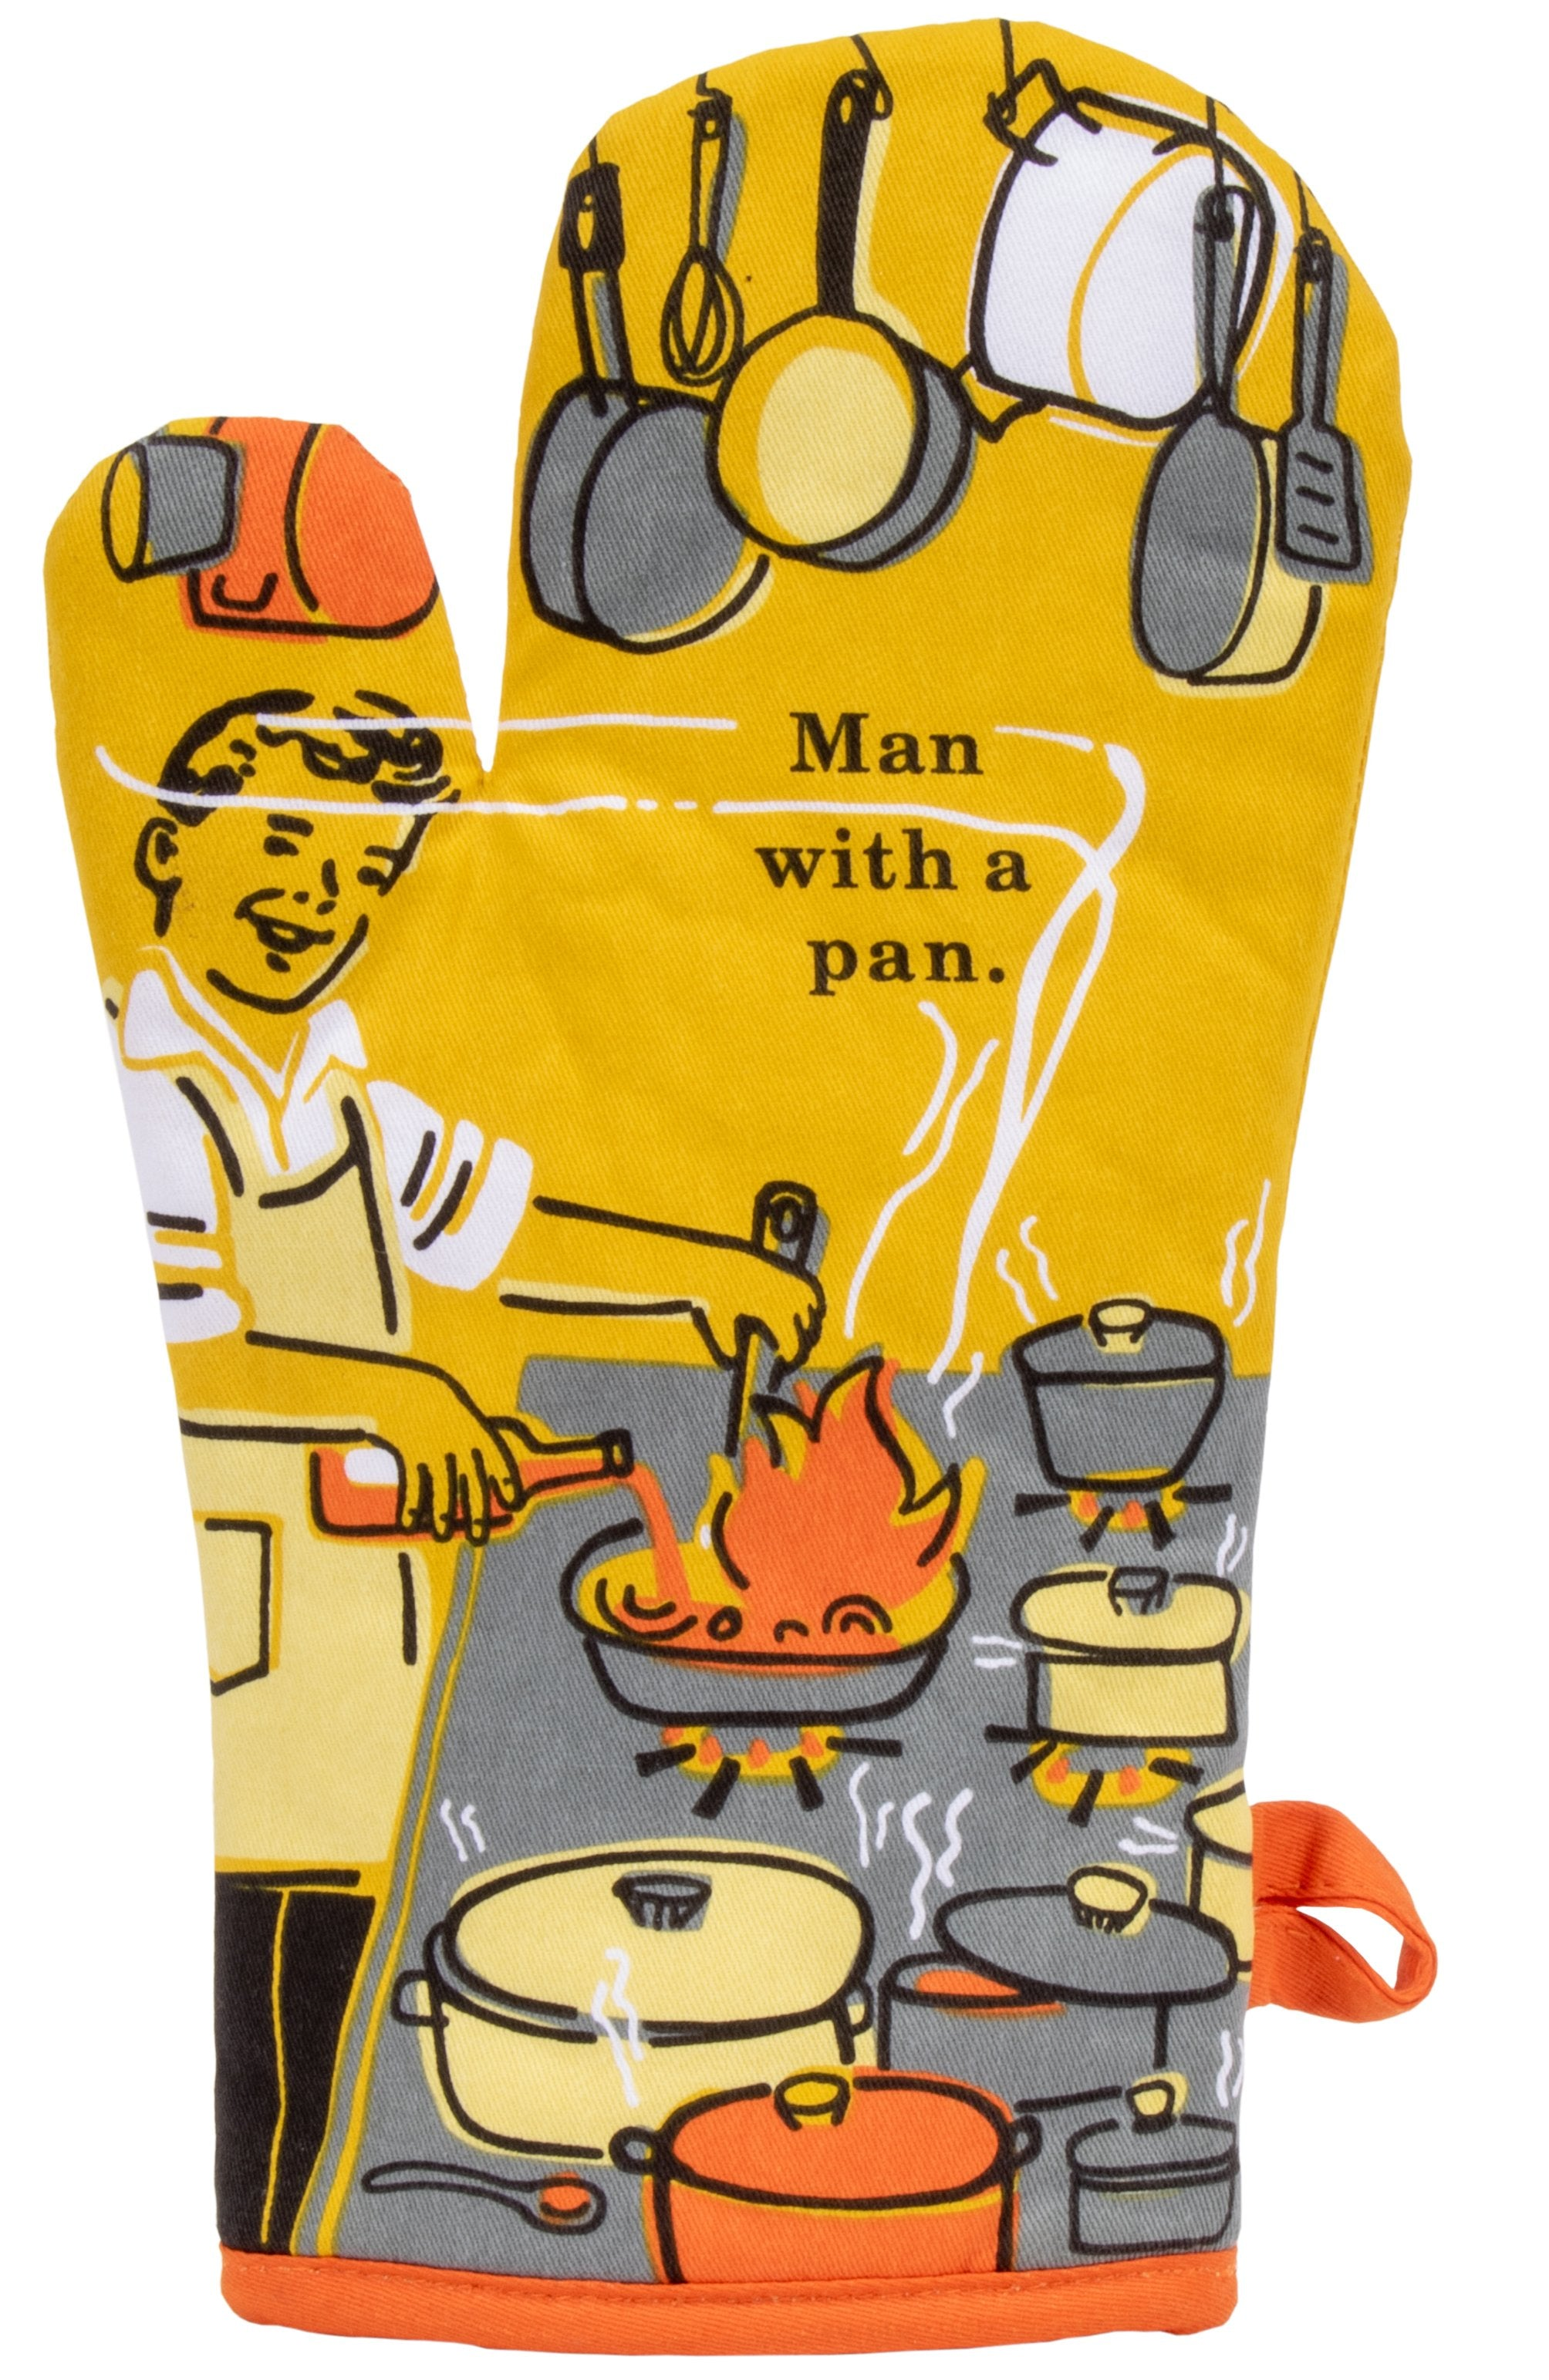 blue q oven mitts man with a pan